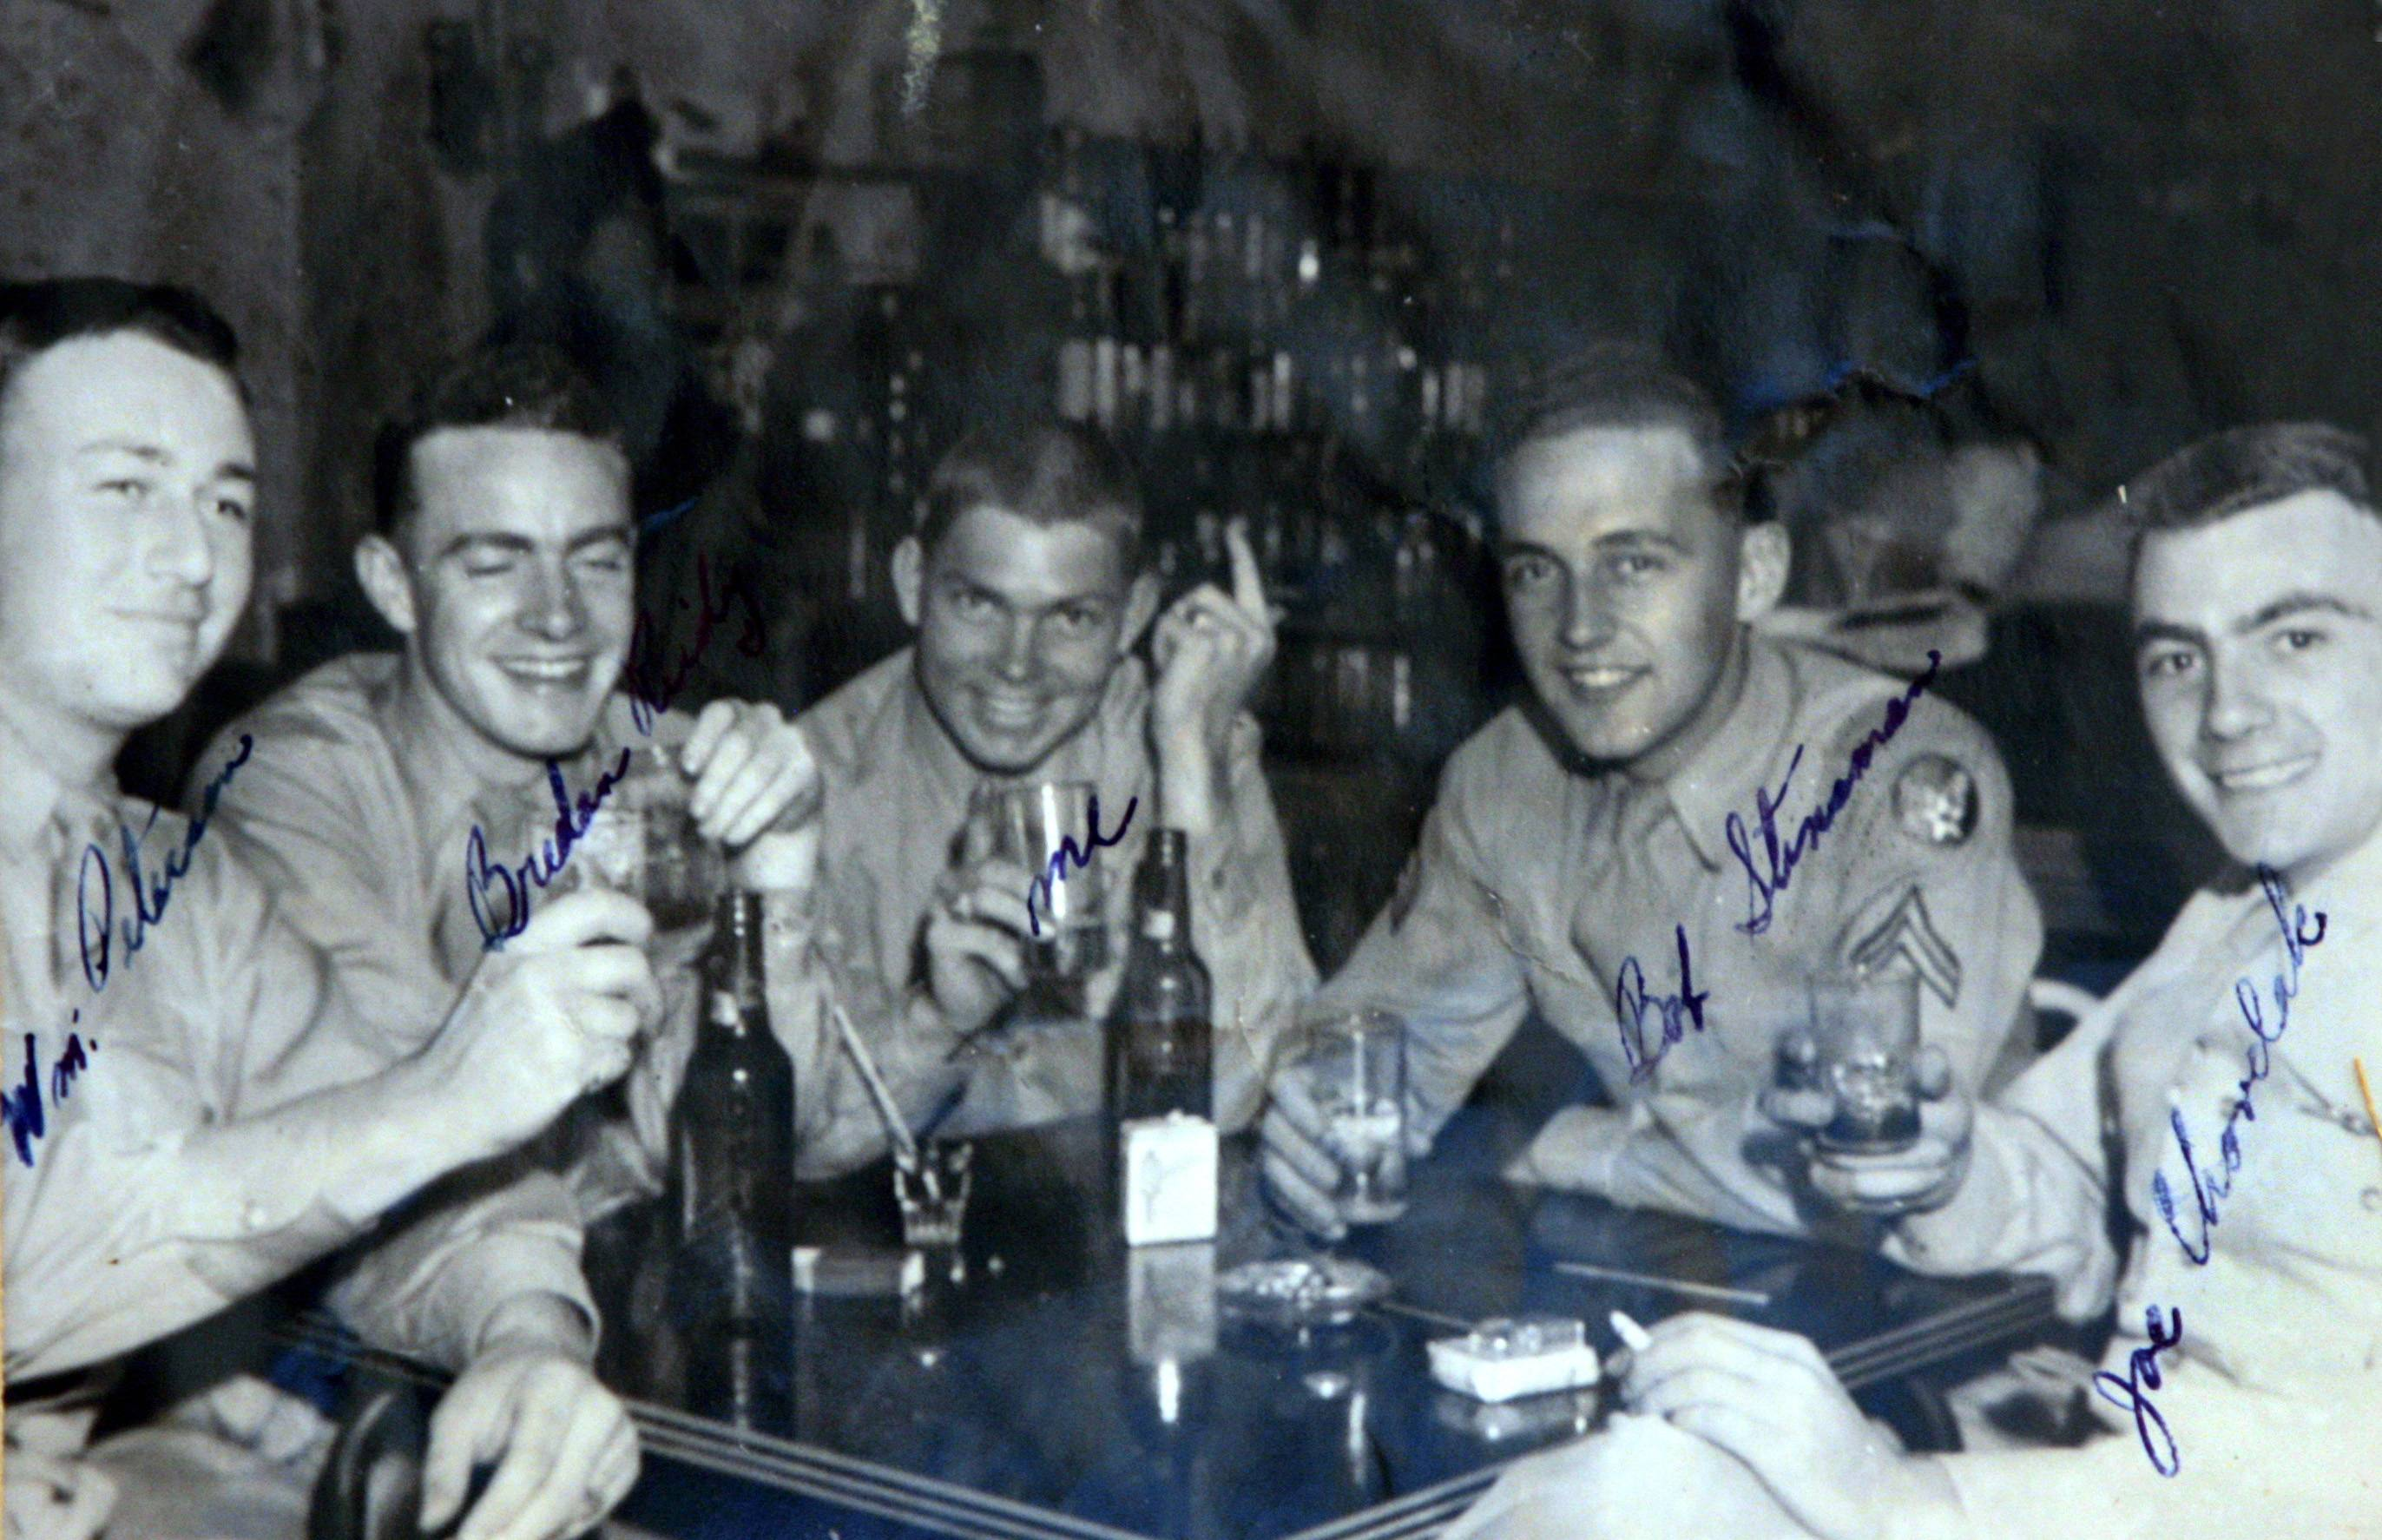 Naperville resident Joe Chovelak, far right, was a member of the 29th Bomb Squadron in the 20th Air Force Division during World War II. He was stationed in Guam for six months at the end of the war and will fly again in a B-29 on Saturday.